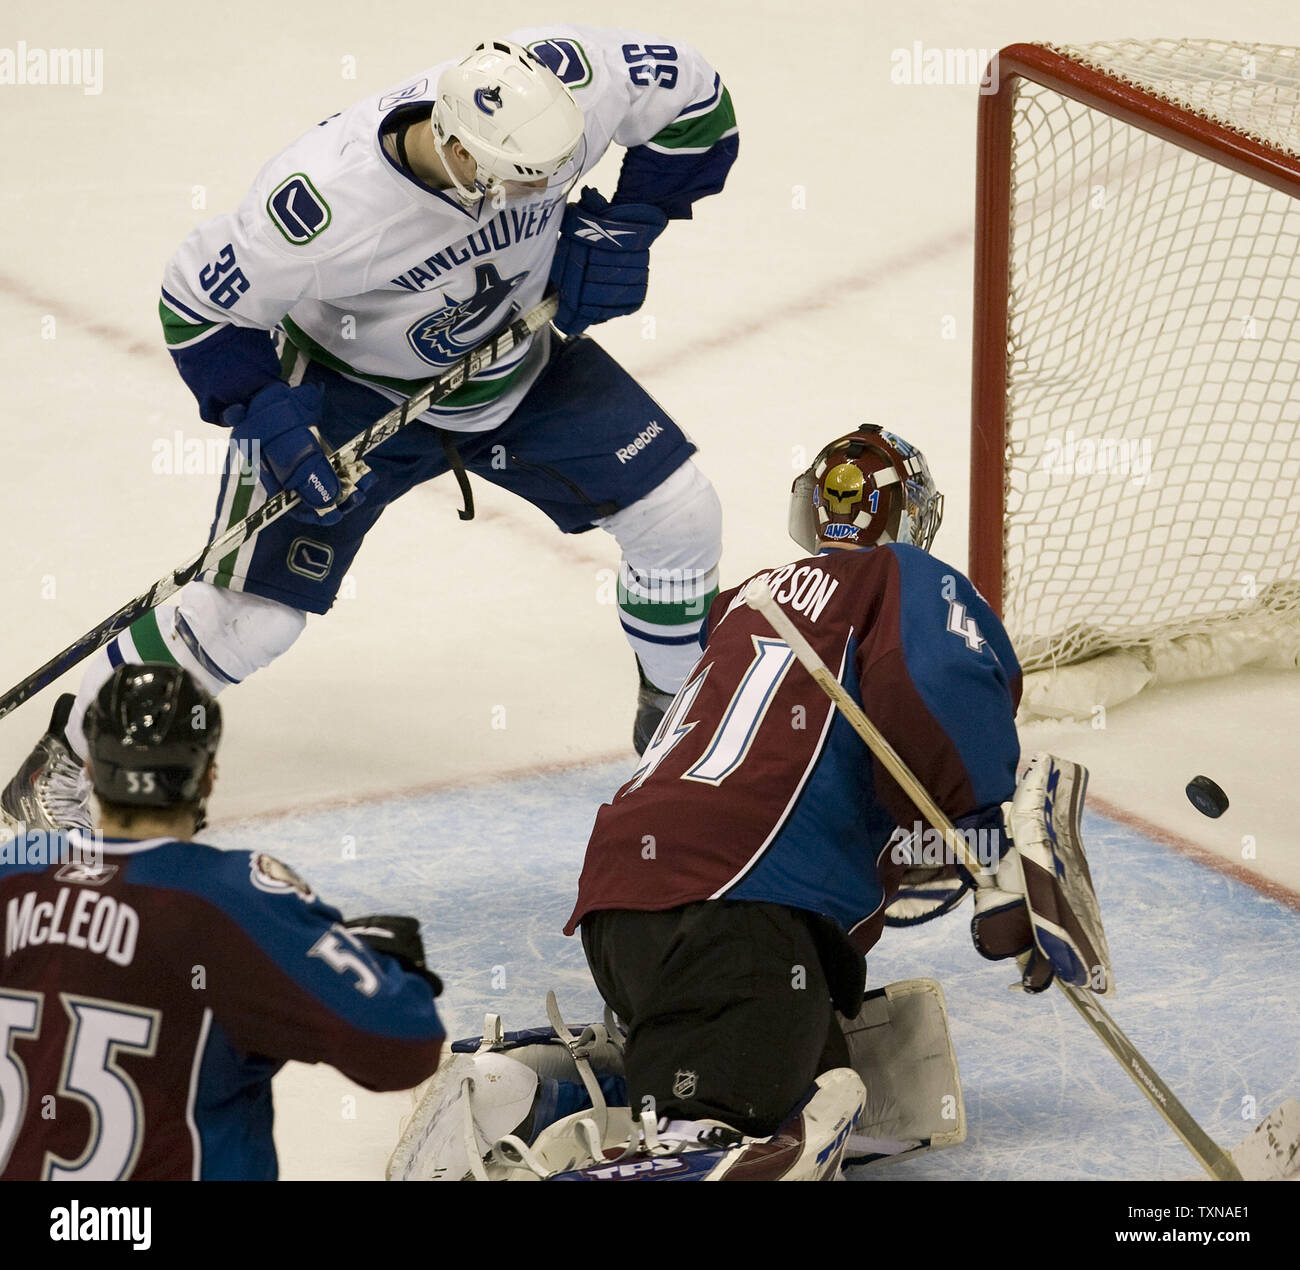 Vancouver Canucks right wing Jannik Hansen scores the winning goal against Colorado Avalanche goalie Craig Anderson during the third period at the Pepsi Center on March 9, 2010 in Denver.  Vancouver widens their Northwest divison lead beating Colorado 6-4 in a come from behind victory.        UPI/Gary C. Caskey - Stock Image